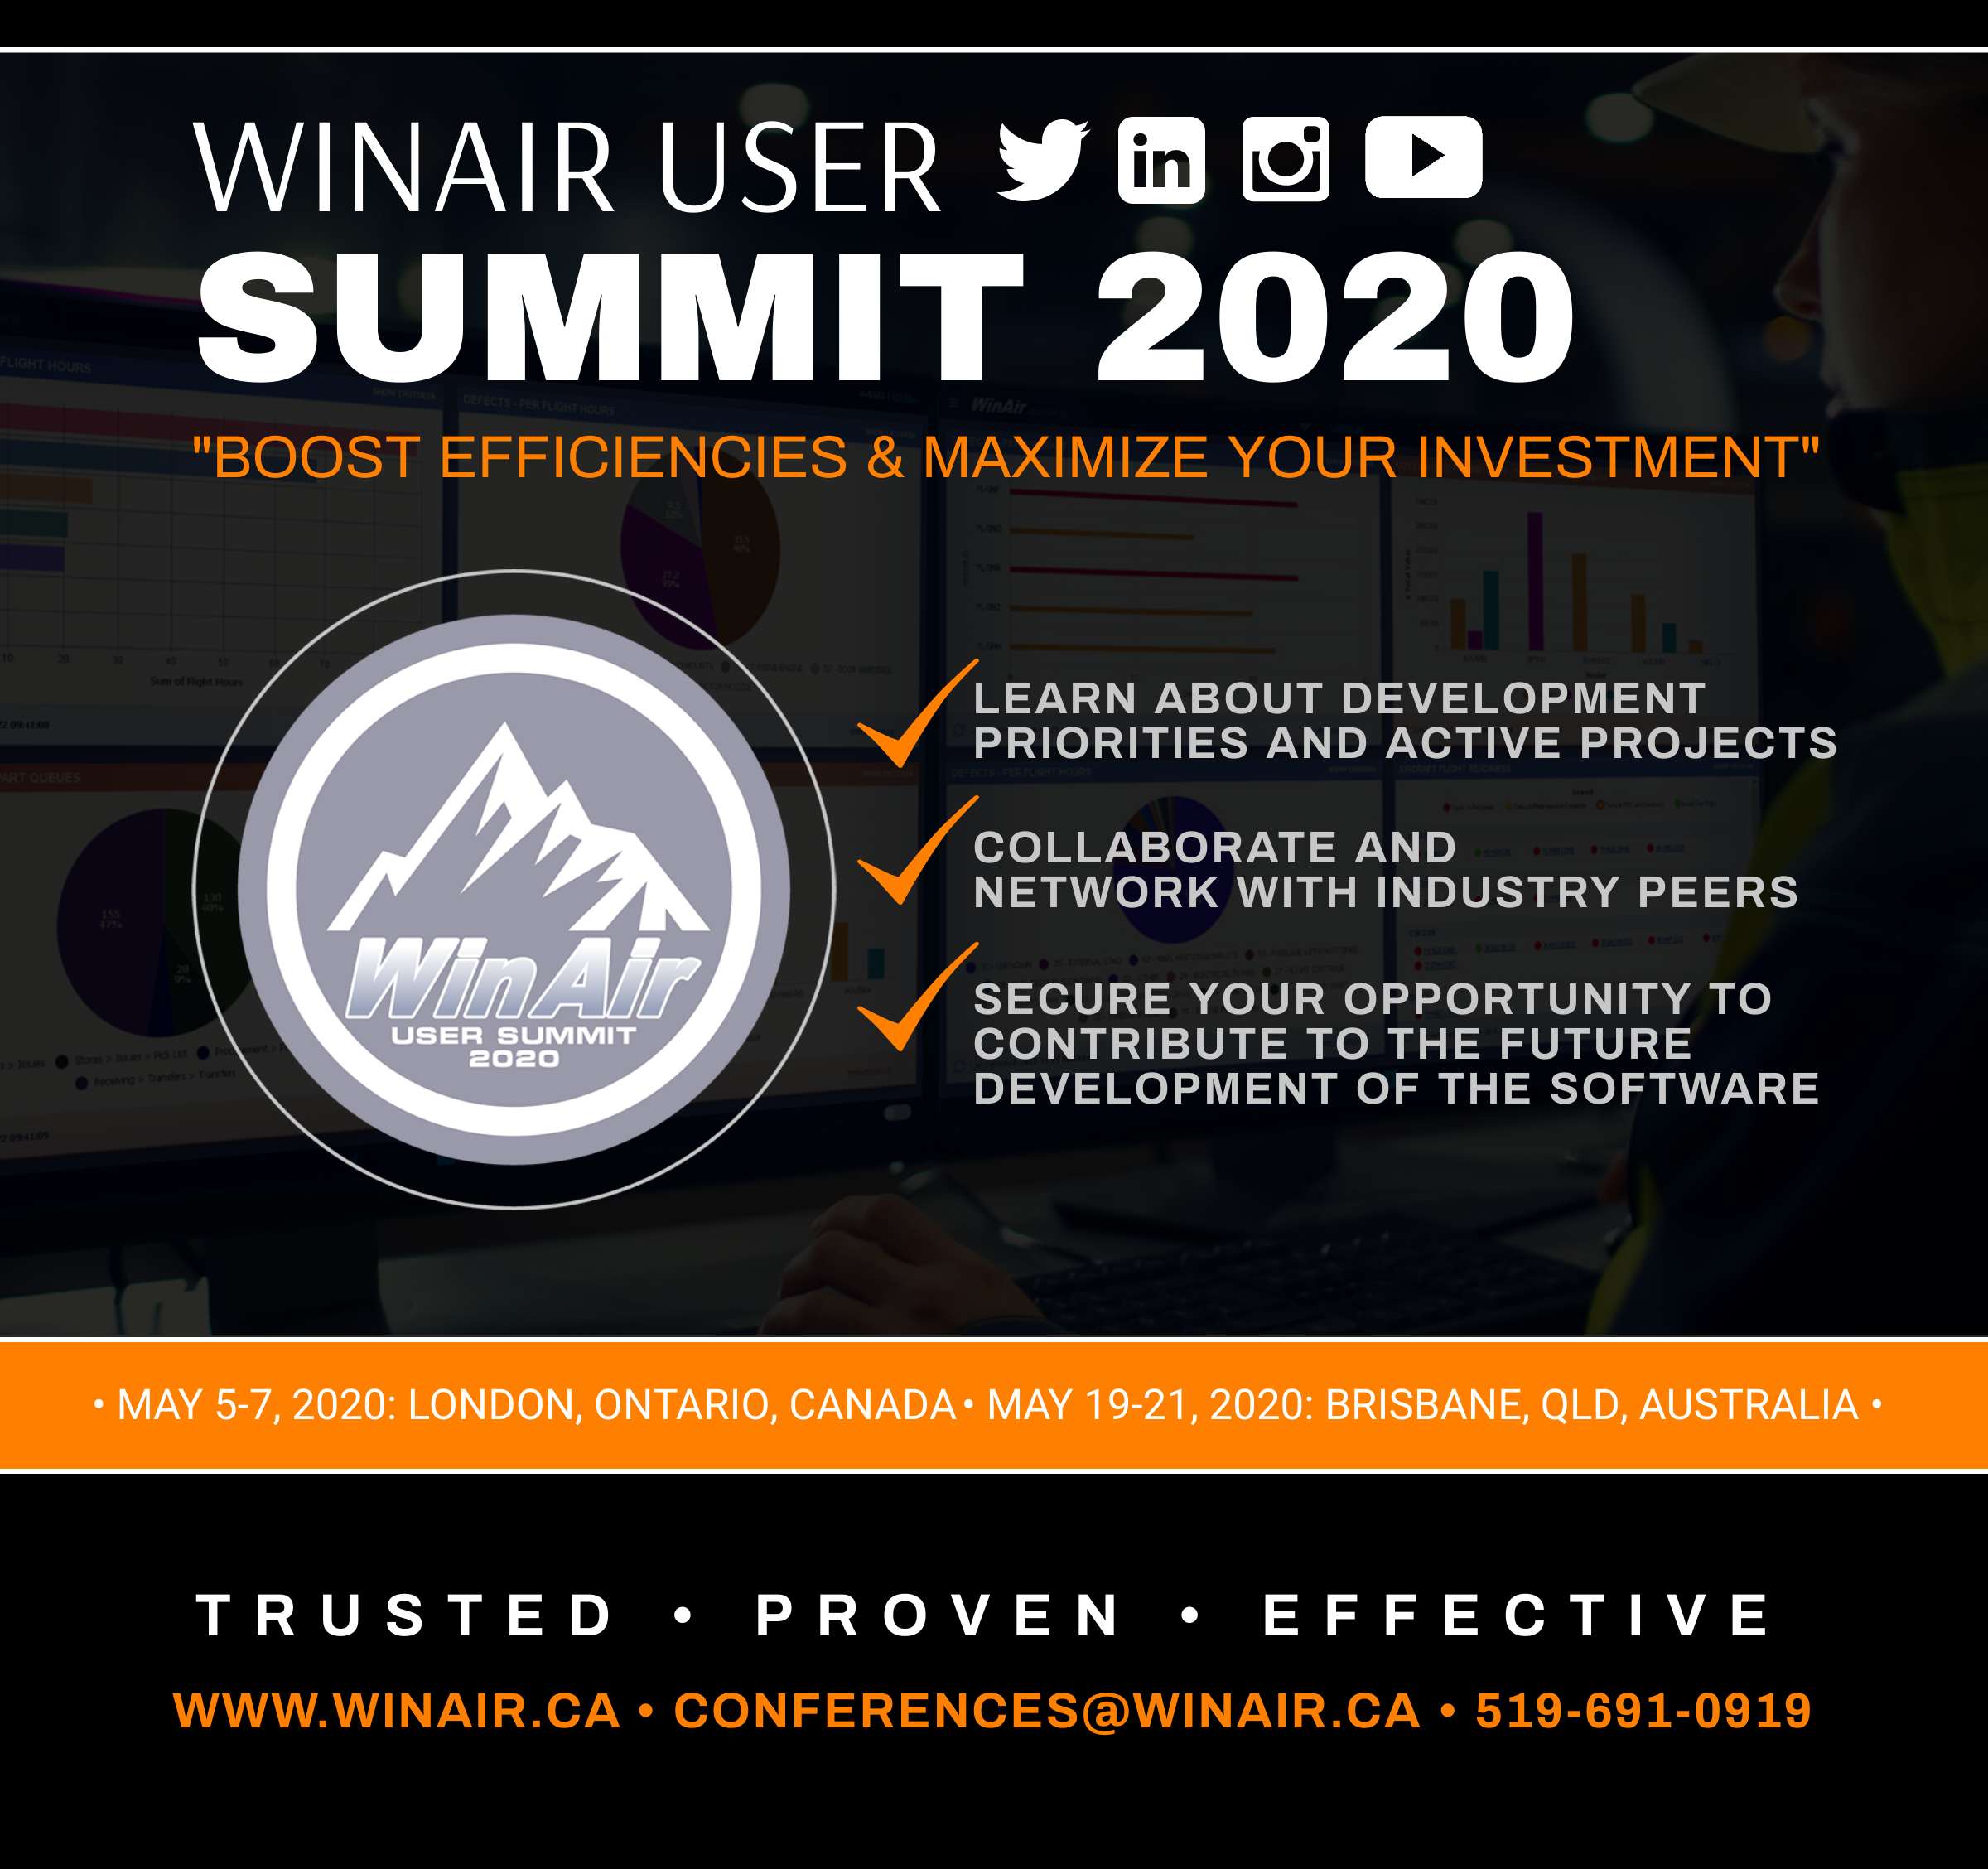 WinAir User Summit 2020 - Boost Efficiencies and Maximize Your Investment - Promotional Image